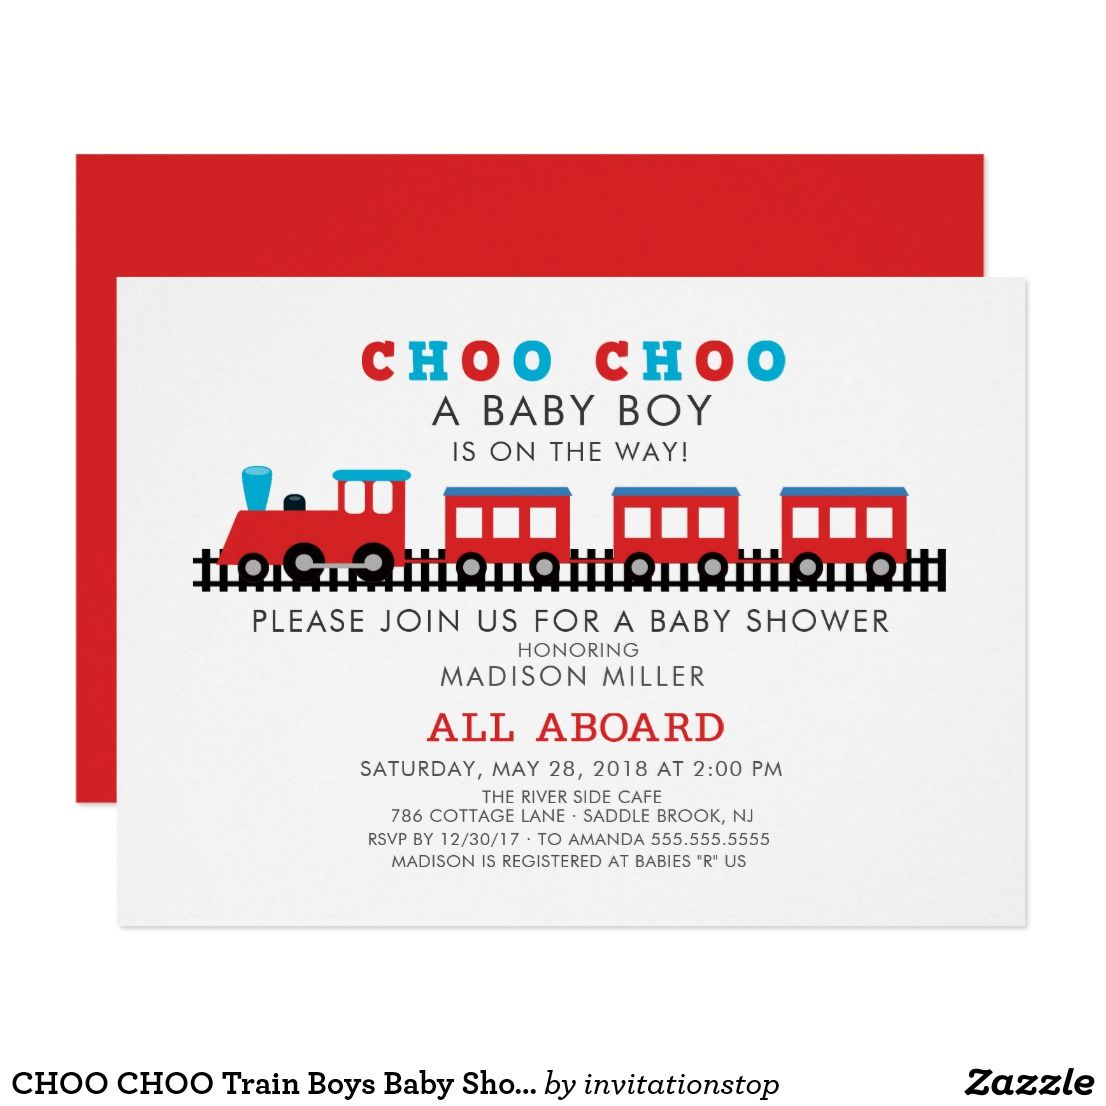 CHOO CHOO Train Boys Baby Shower Invitation All aboard for a baby ...